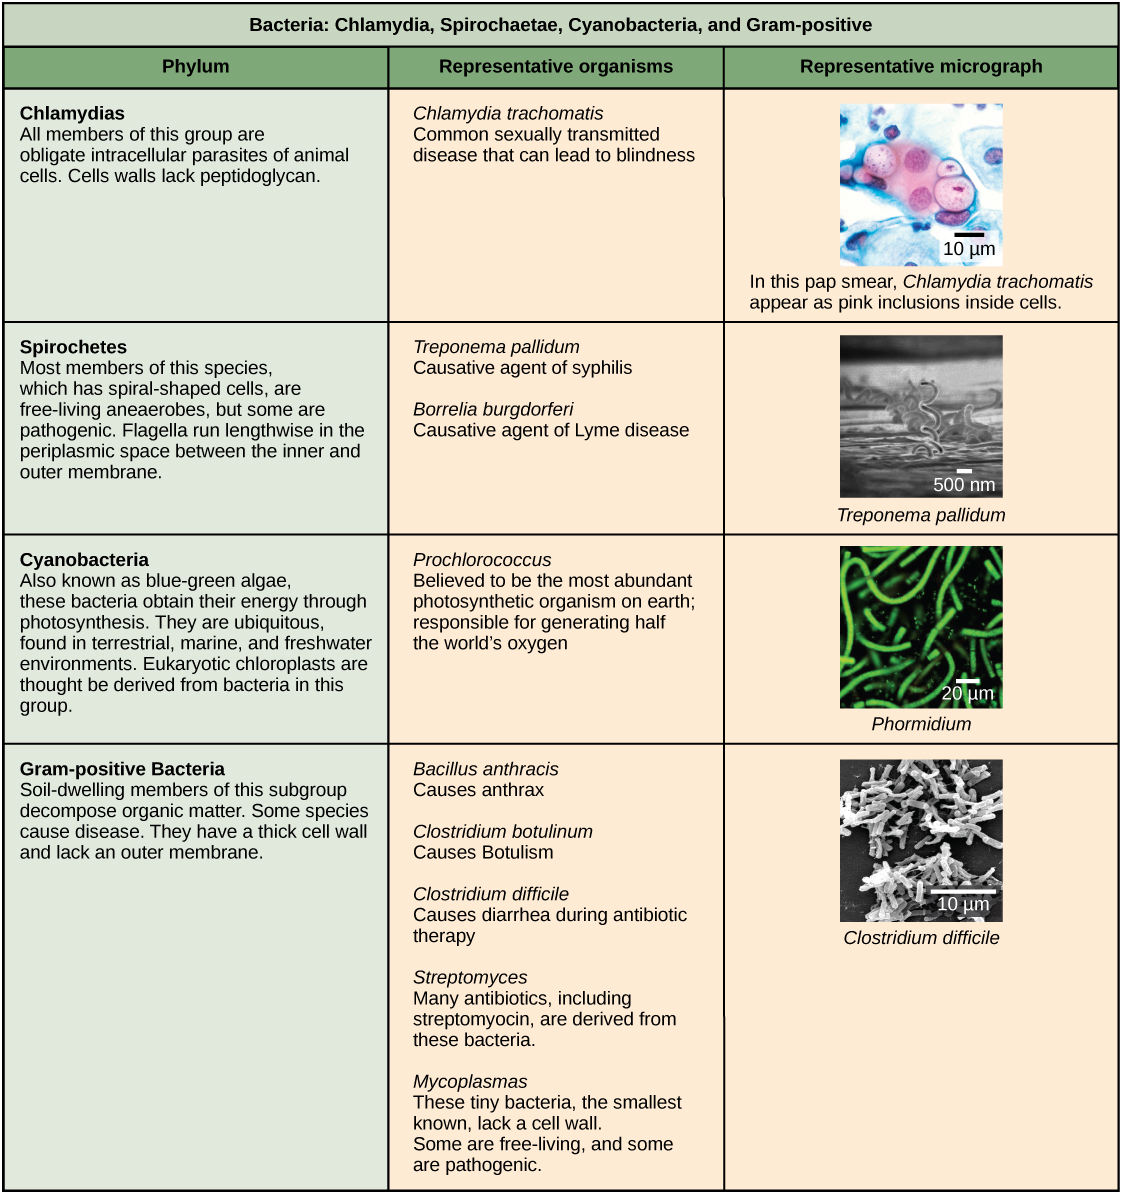 Structure Of Prokaryotes Biology Ii Prokaryotic Cells Diagram Below Learn About Figure 5 Chlamydia Spirochetes Cyanobacteria And Gram Positive Bacteria Are Described In This Table Note That Bacterial Shape Is Not Phylum Dependent